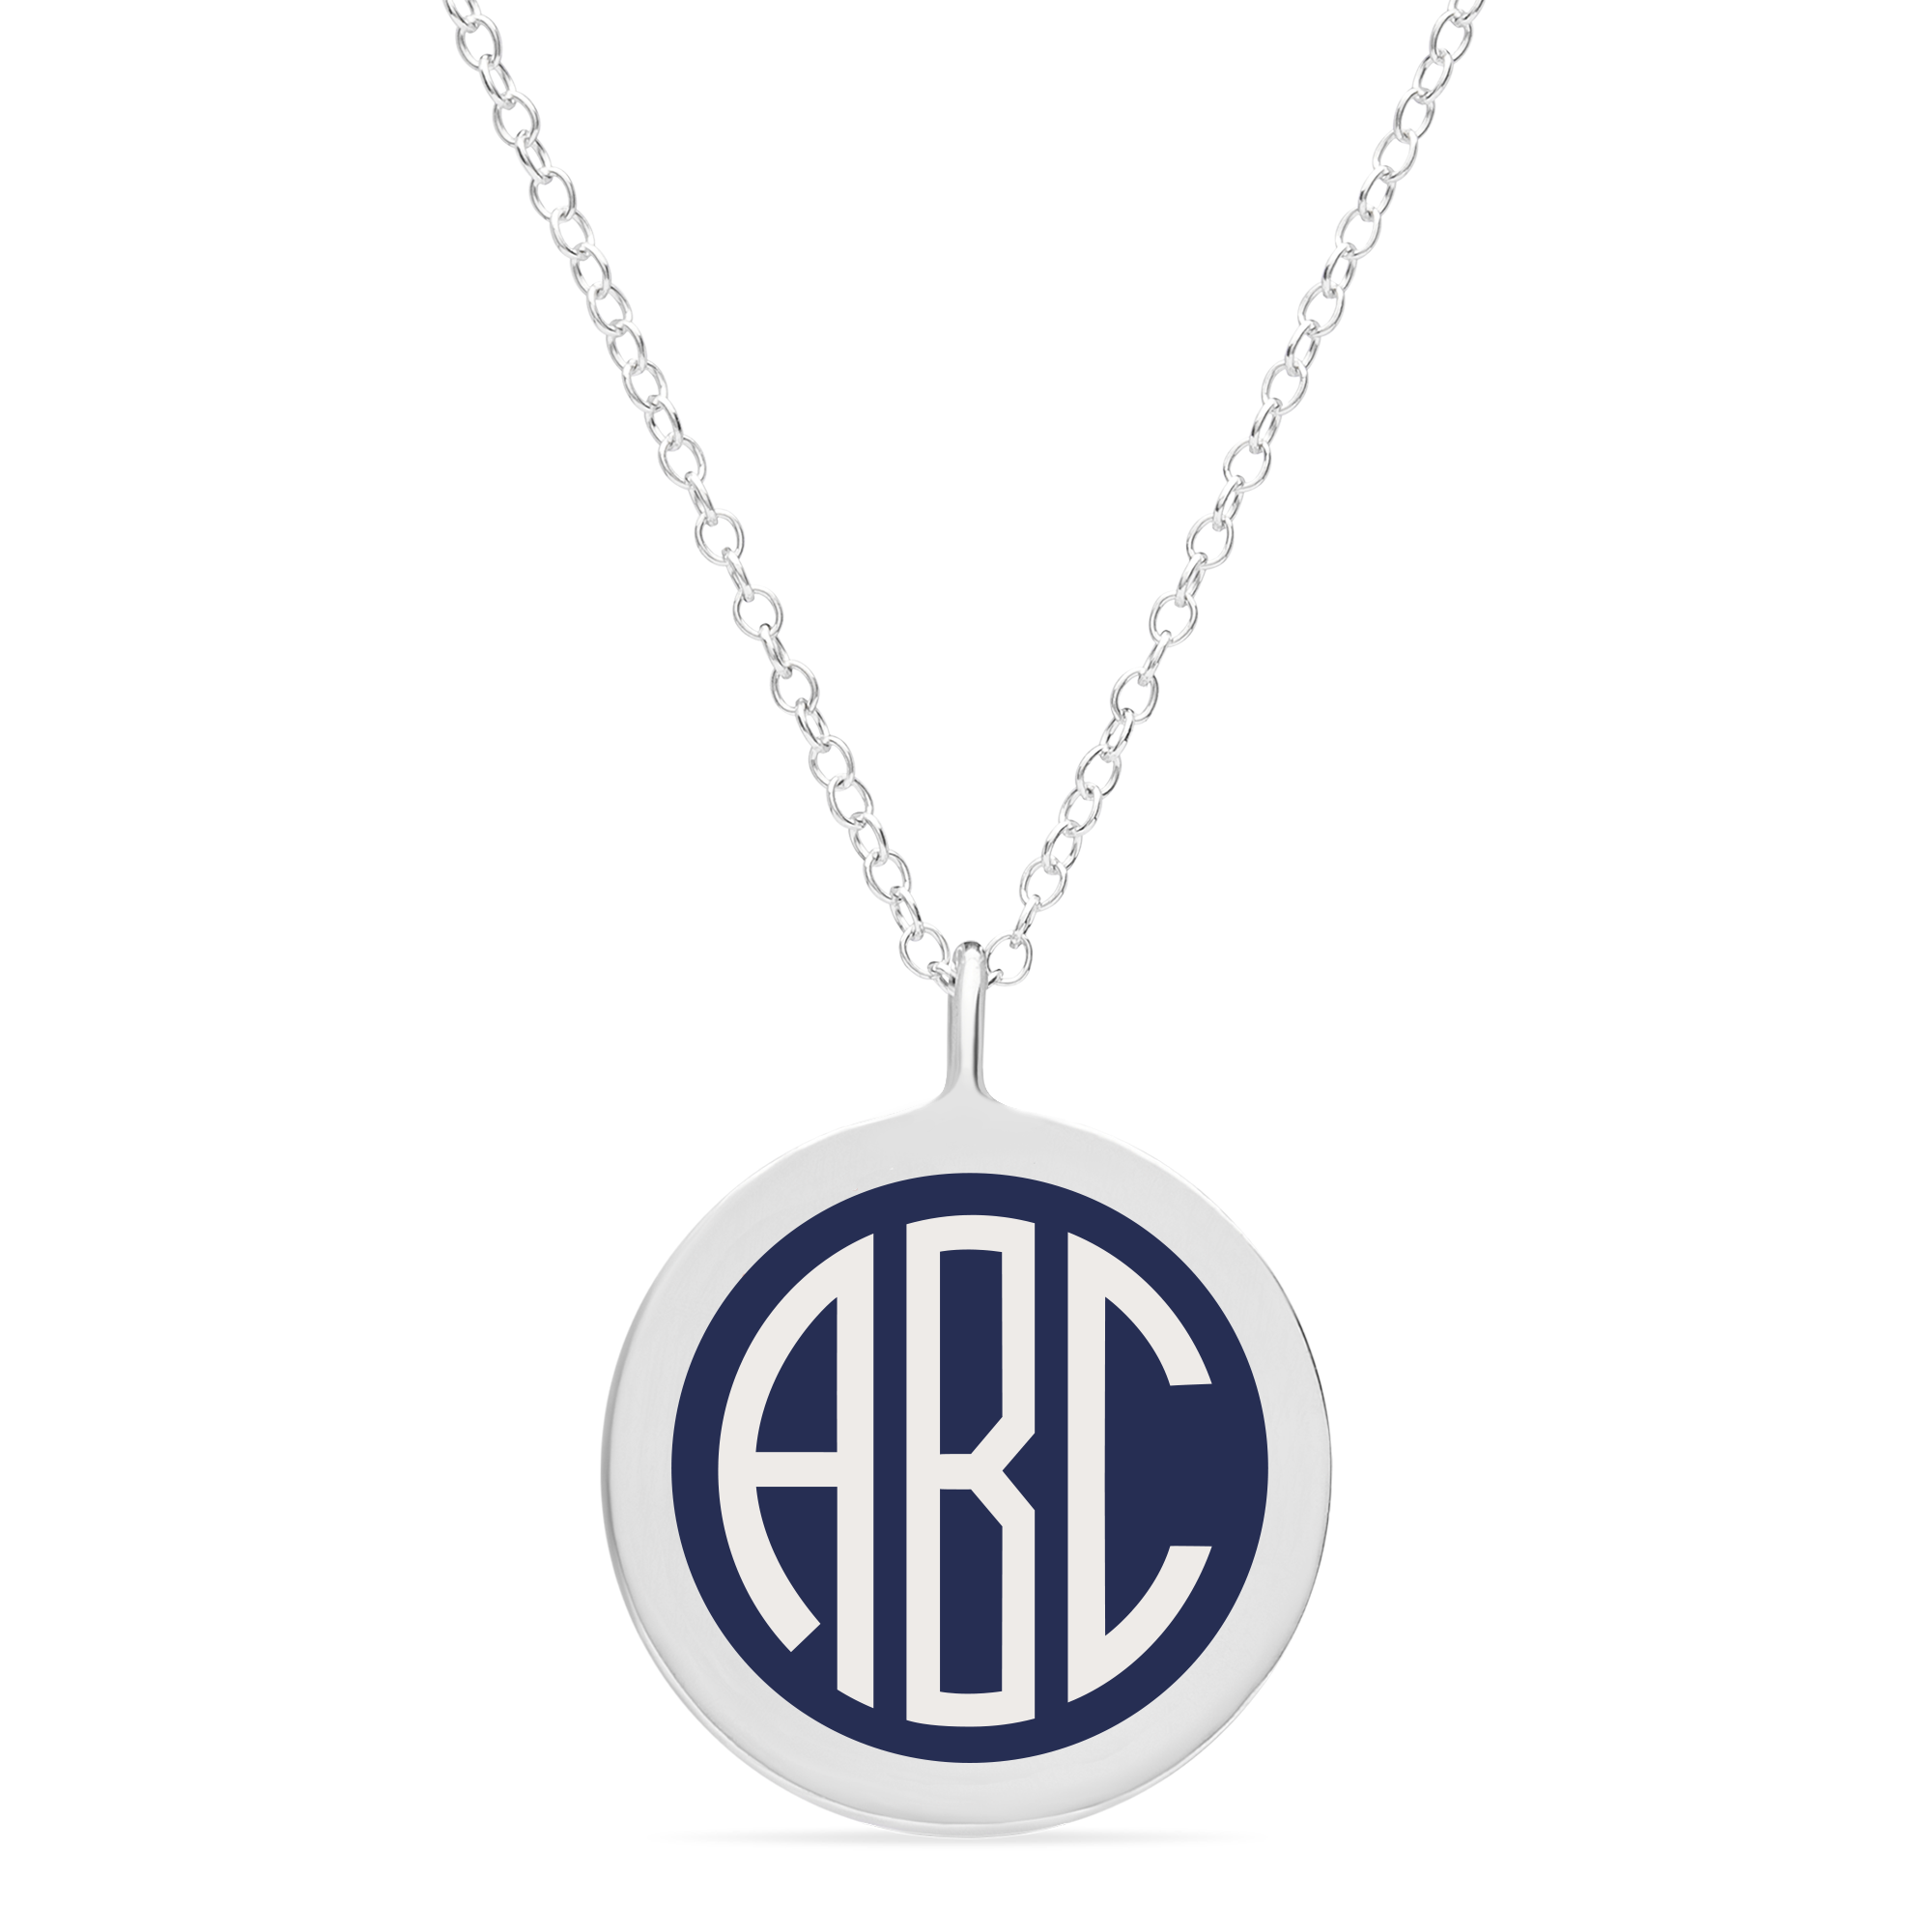 BESPOKE LARGE MONOGRAM NECKLACE in sterling silver